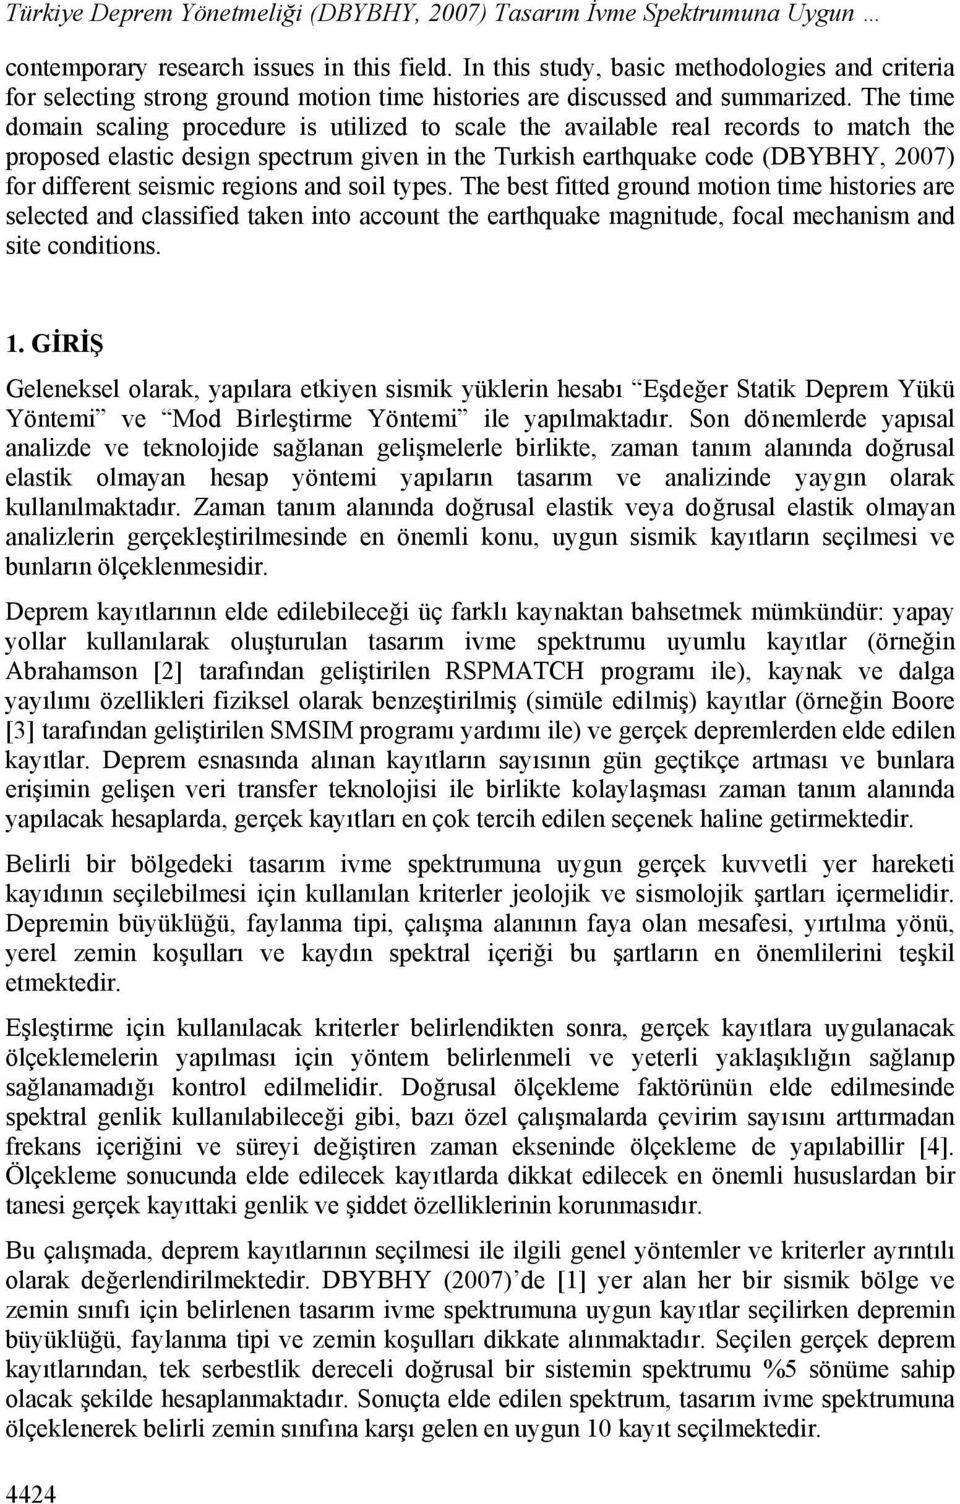 The time domain scaling procedure is utilized to scale the available real records to match the proposed elastic design spectrum given in the Turkish earthquake code (DBYBHY, 2007) for different